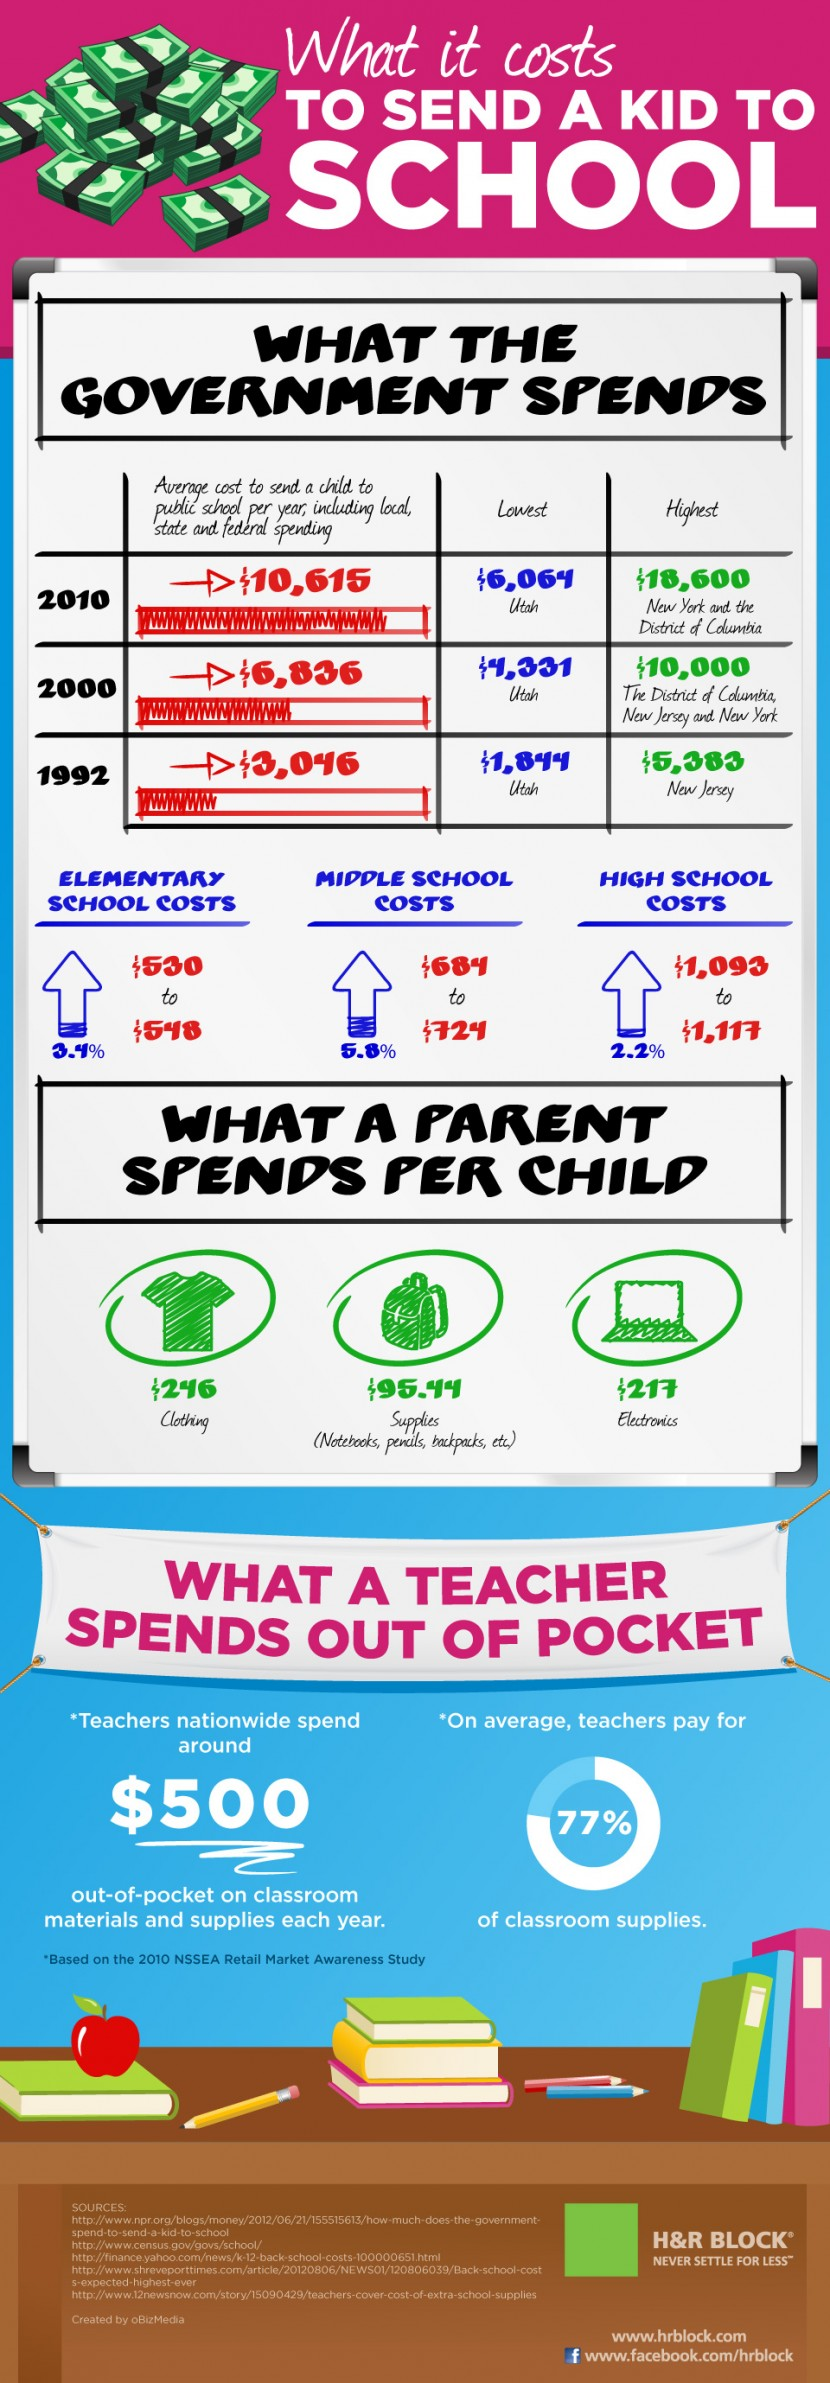 What It Costs to Send A Kid to School